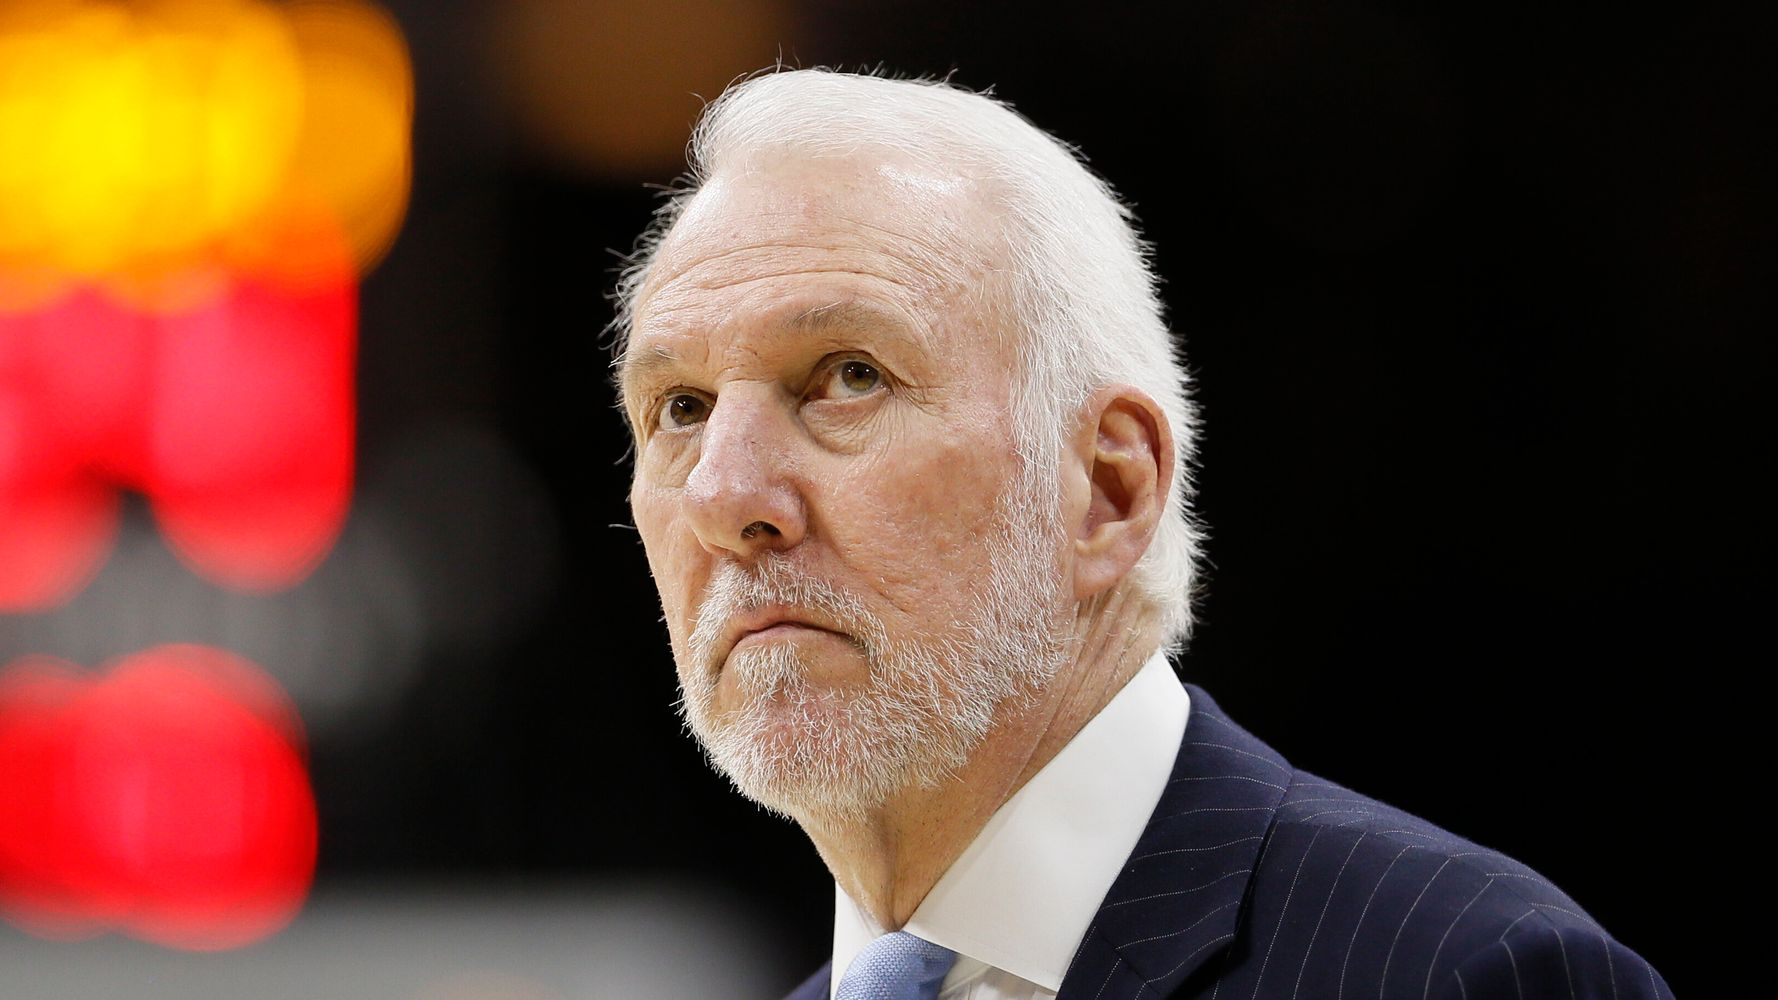 Gregg Popovich Unleashes On Trump: 'He's Not Just Divisive, He's A Destroyer'